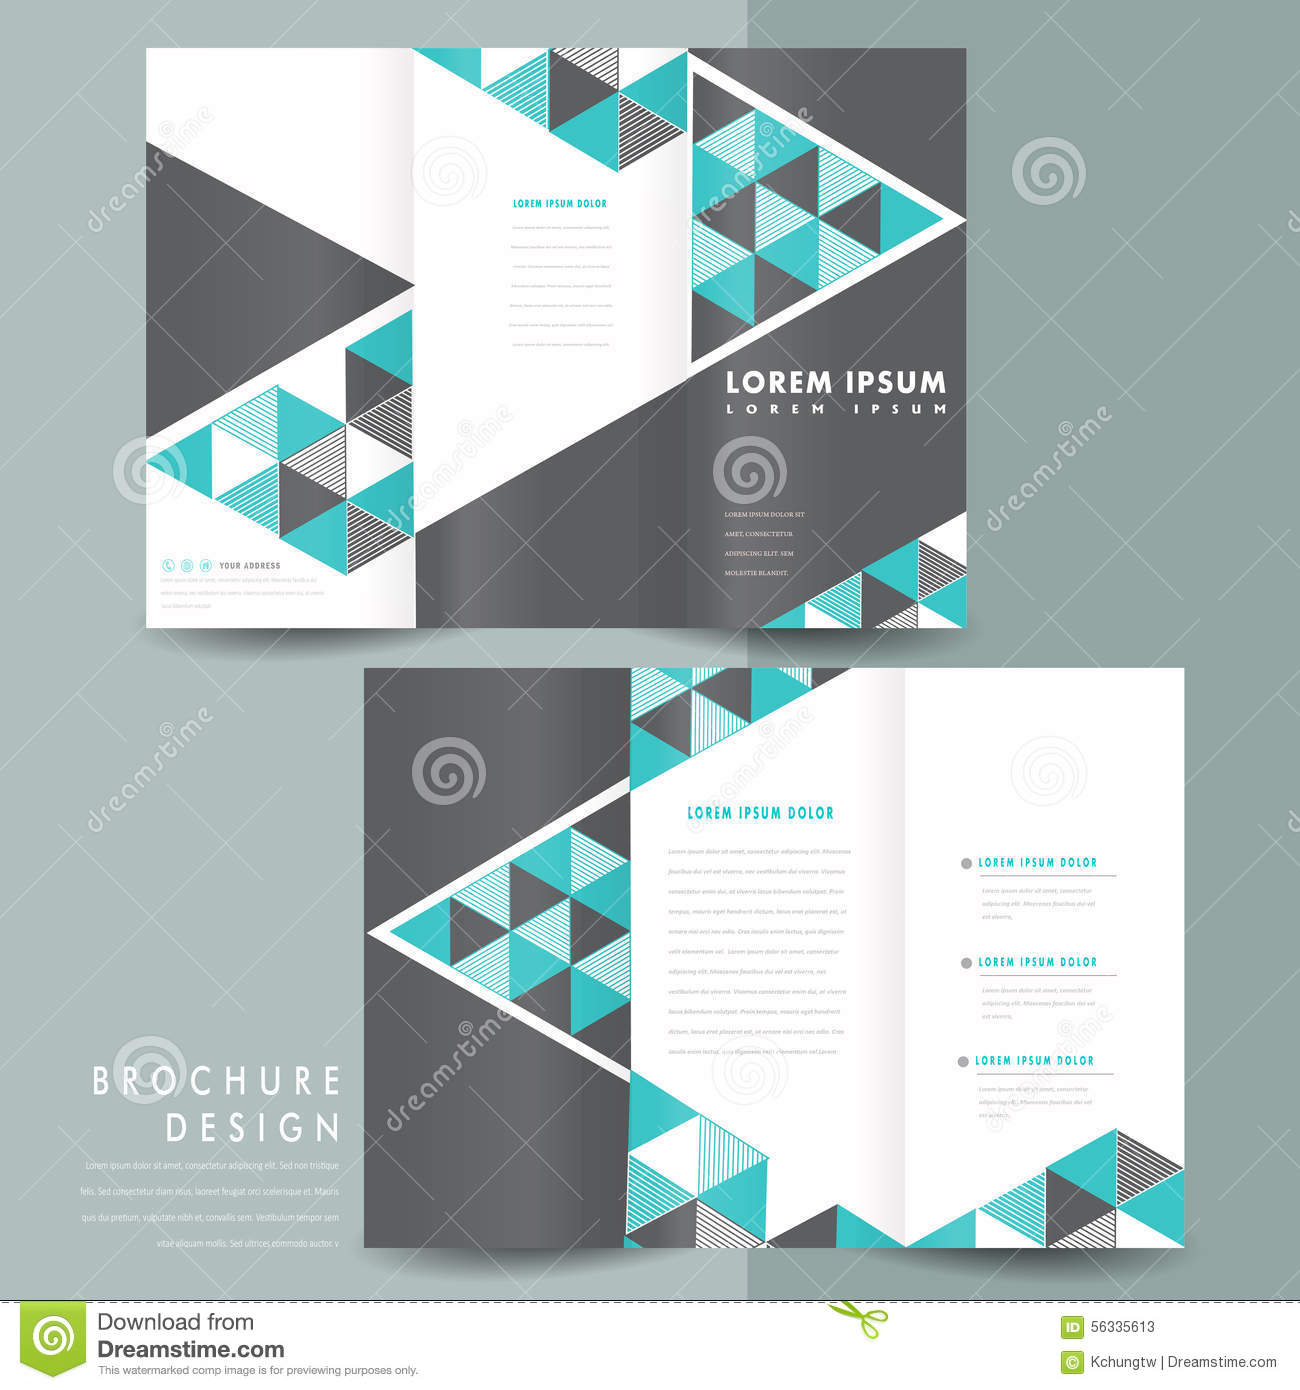 Modern Tri-fold Brochure Template Design Stock Vector - Illustration ...